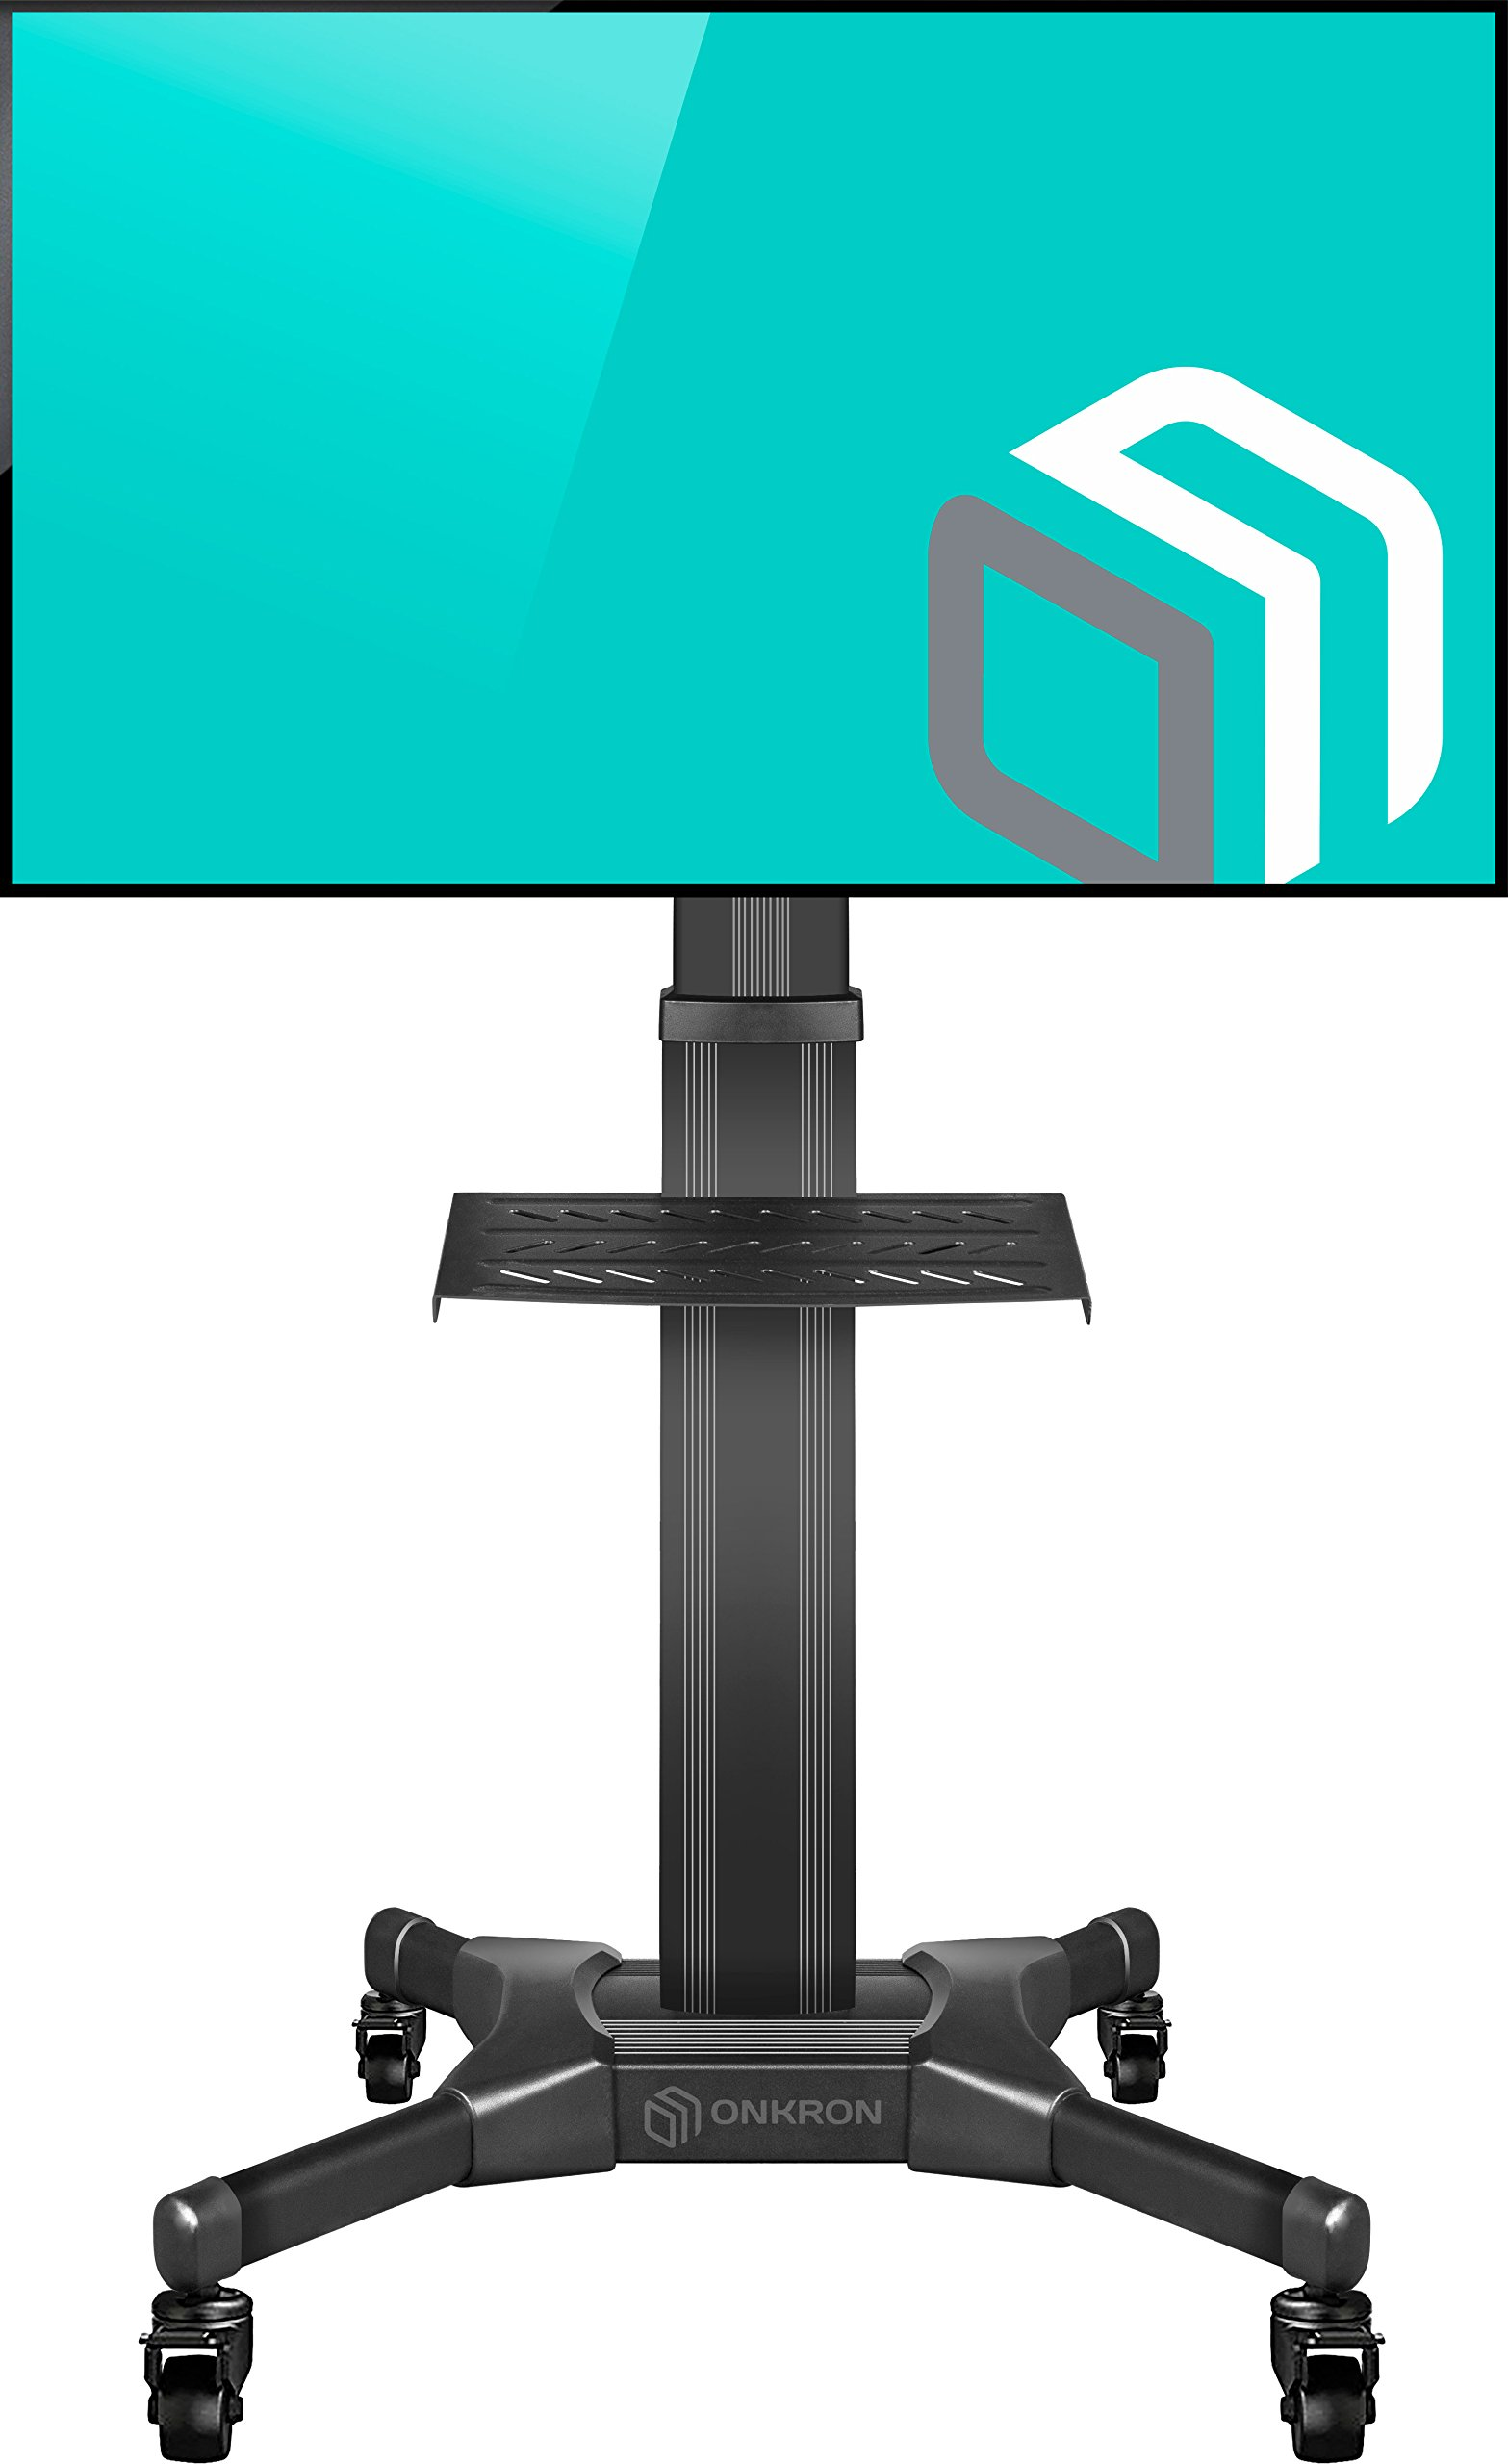 ONKRON Mobile TV Stand with Mount Rolling TV Cart for 32'' - 55'' LCD LED Flat Screen TV with Wheels Shelves Height Adjustable TV Trolley (TS2551) by ONKRON (Image #1)